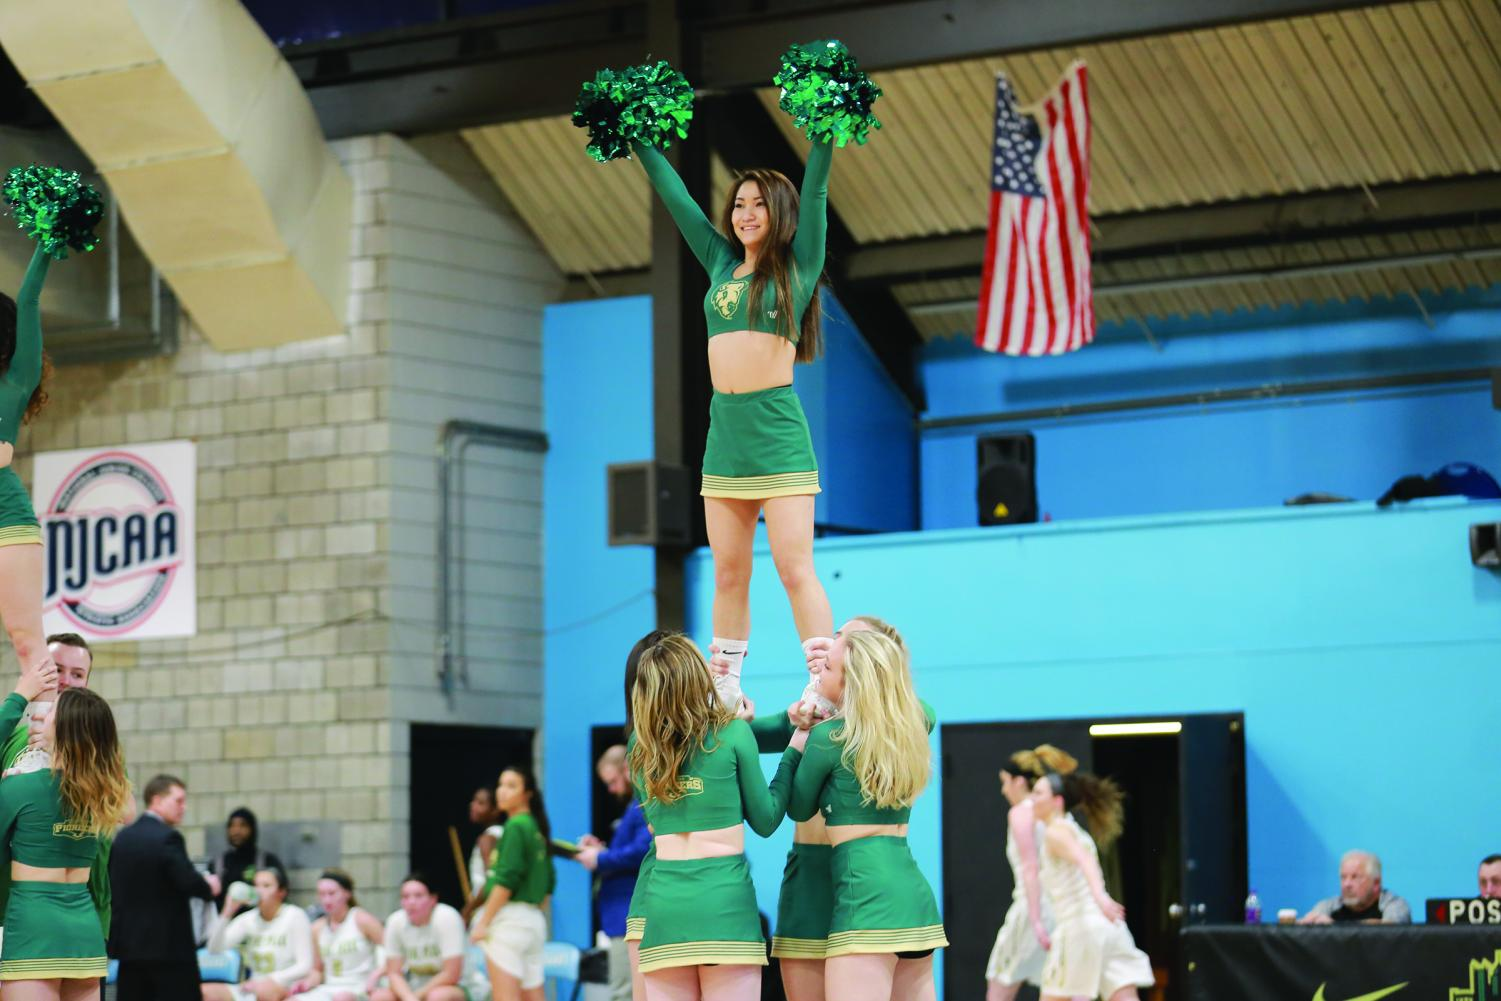 Members of the Competitive Cheer team perform during a home basketball game earlier this season at the CCAC Allegheny Campus Gym.